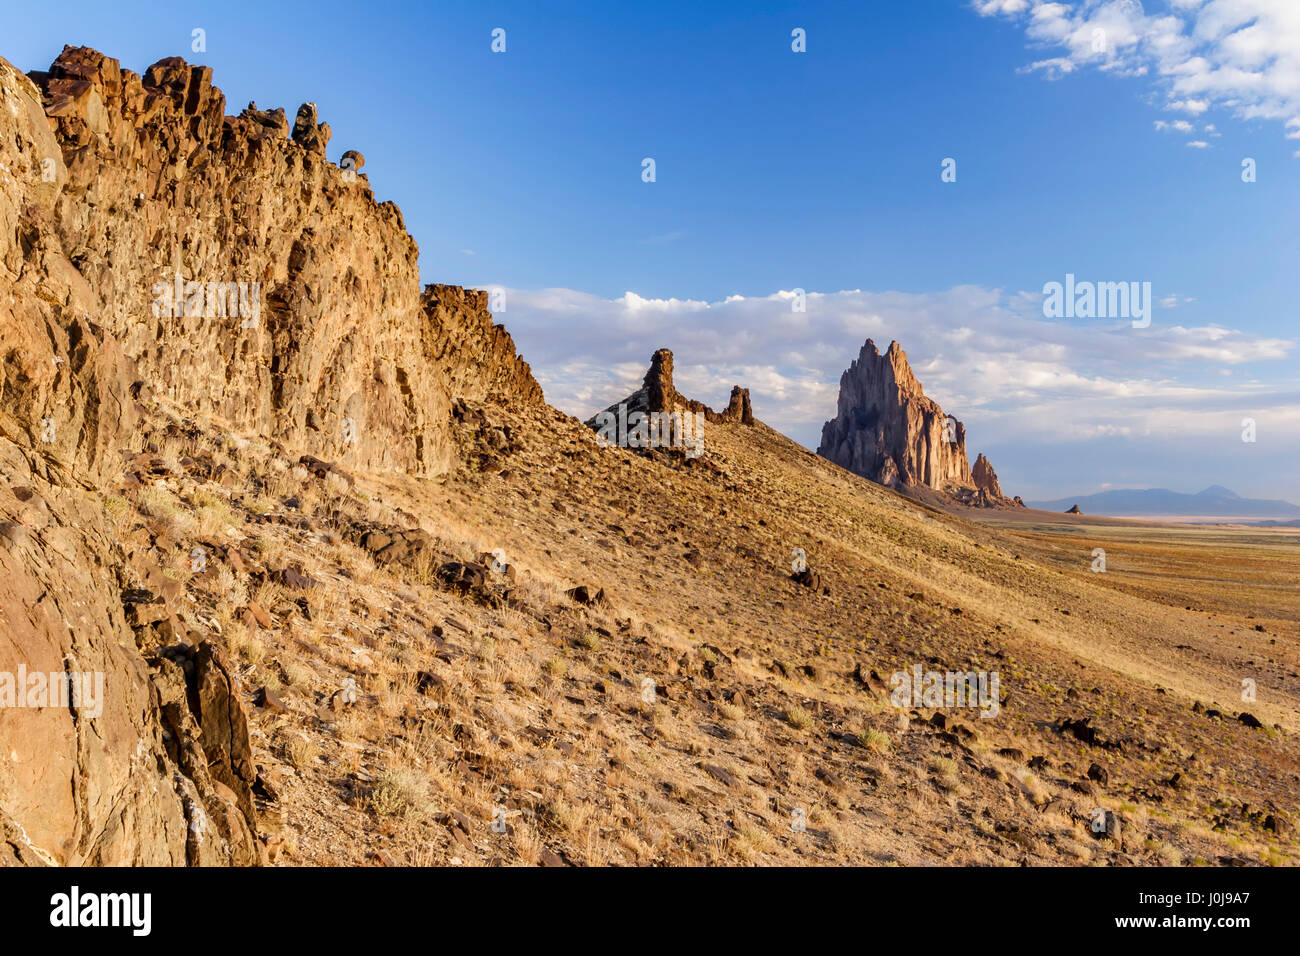 Colorado plateau new mexico stock photos colorado plateau new volcanic ridge and shiprock new mexico usa stock image publicscrutiny Images